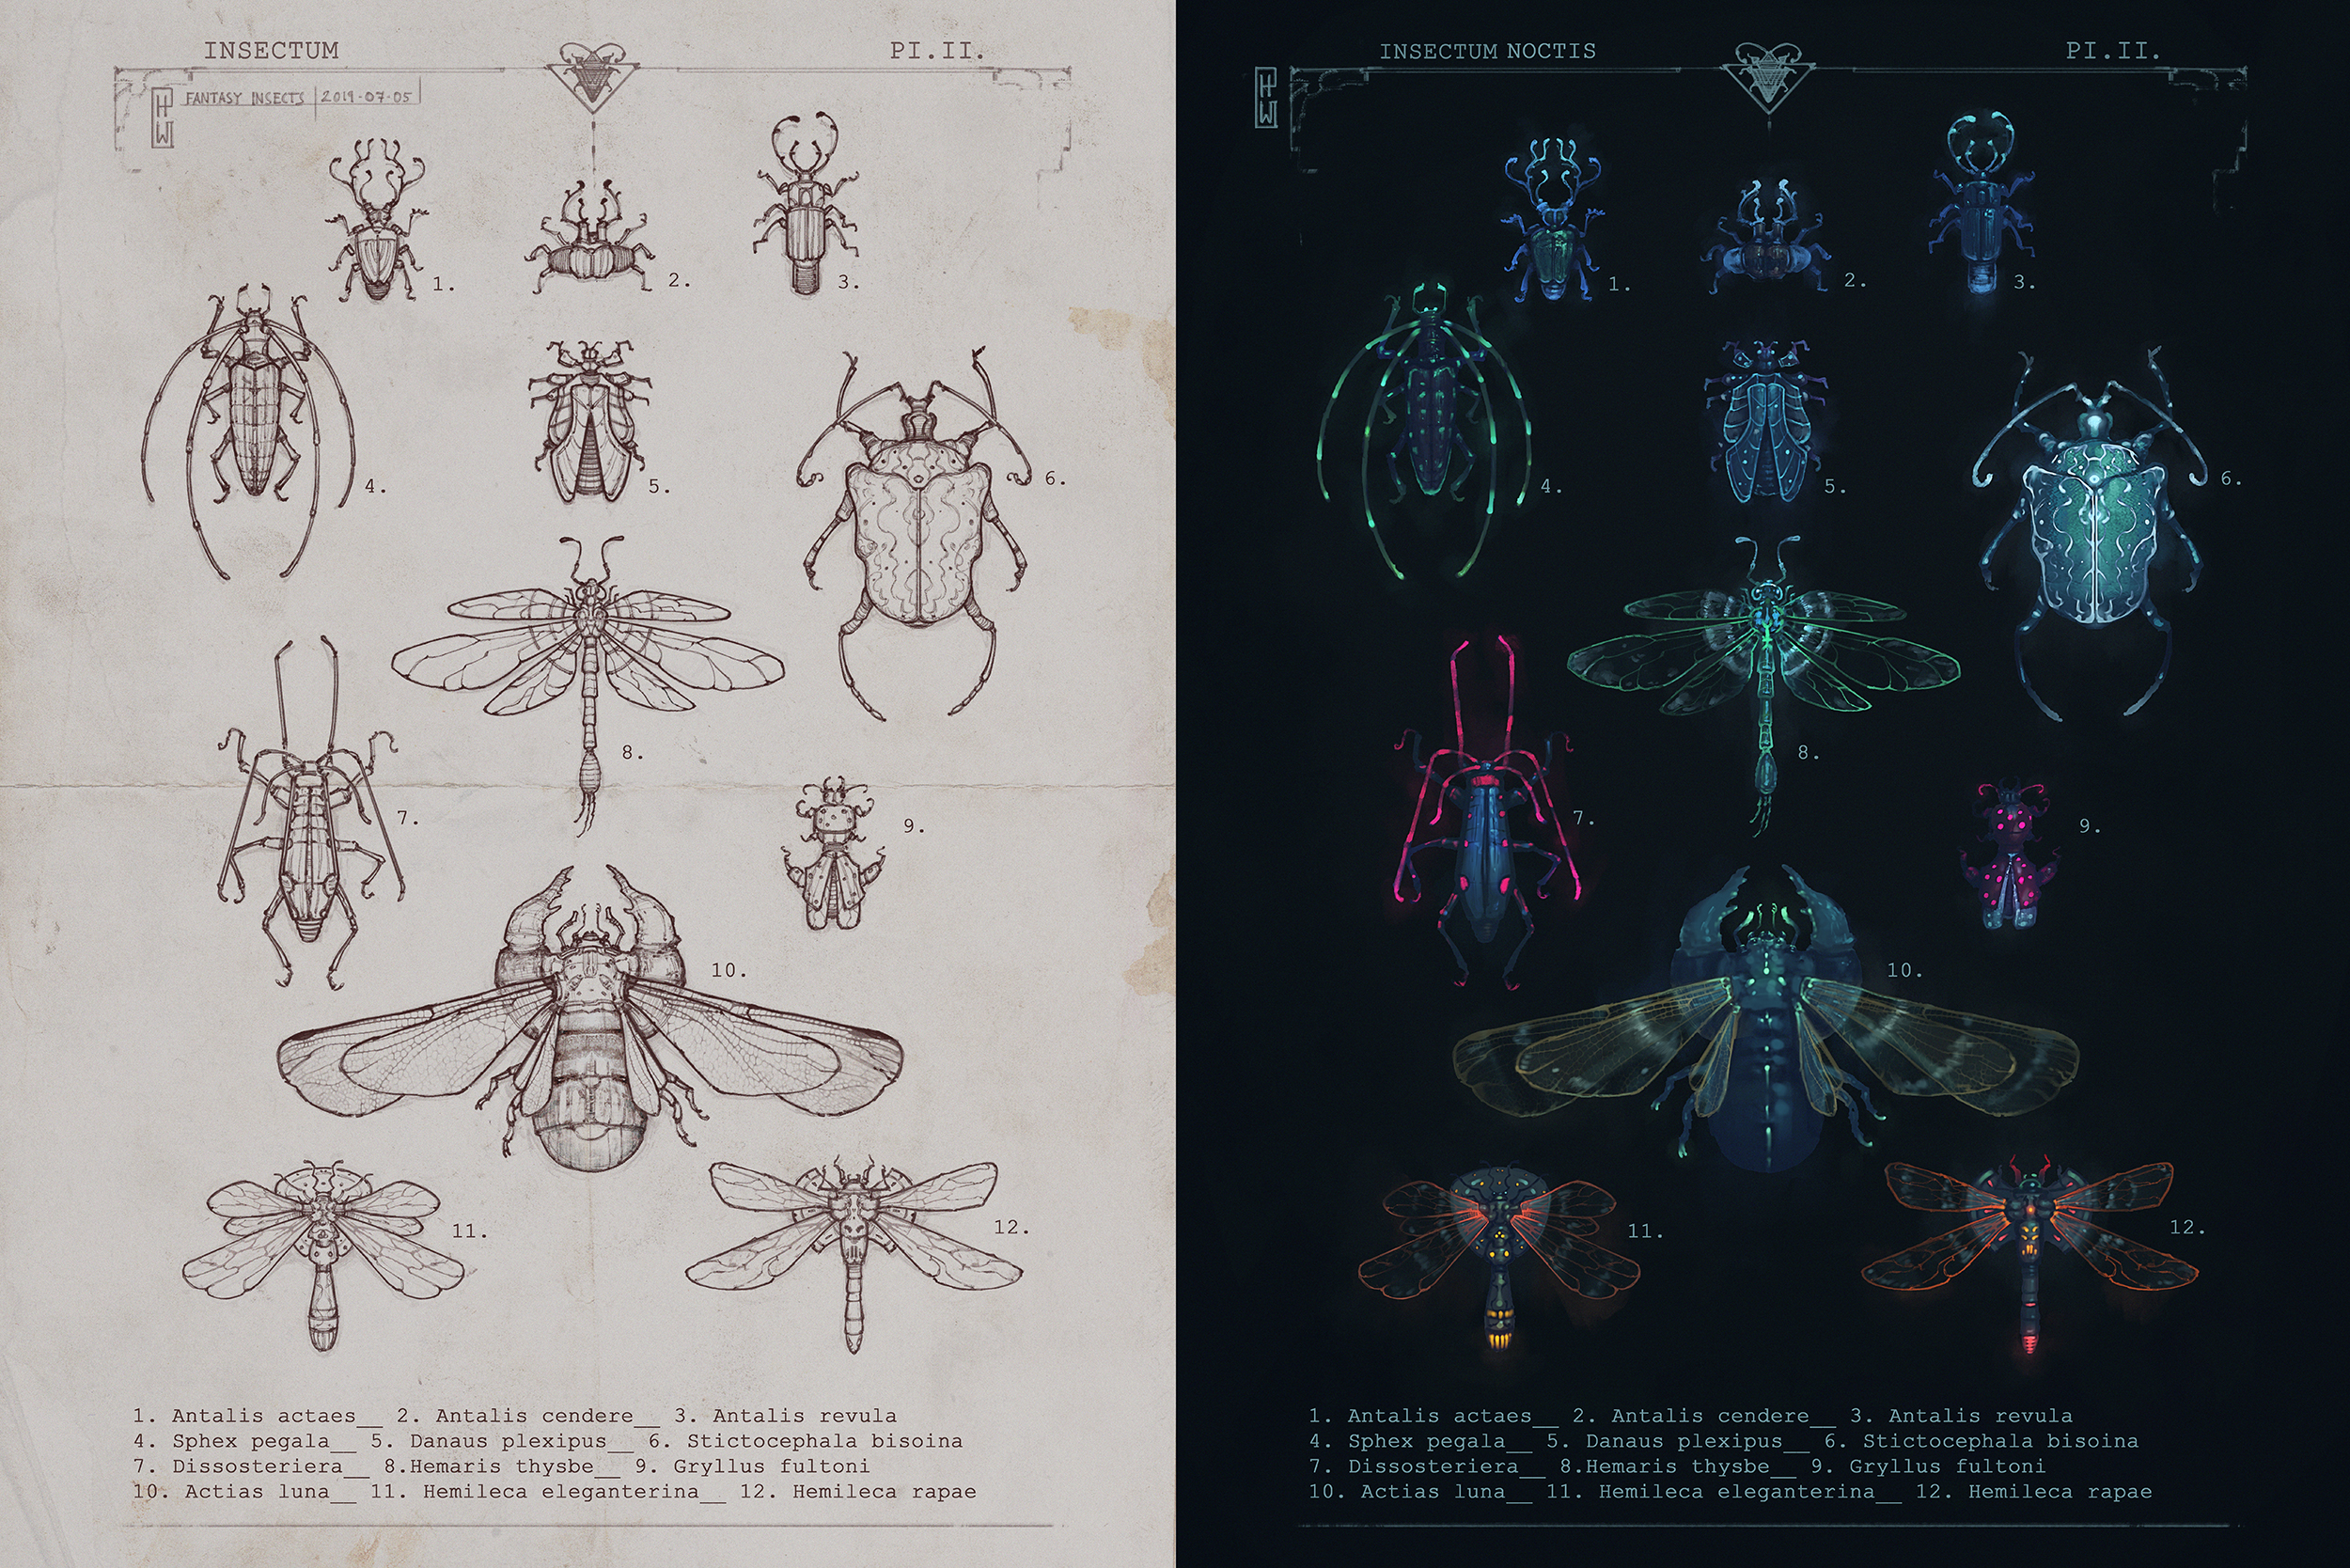 Insects_07_Fantasy1.jpg